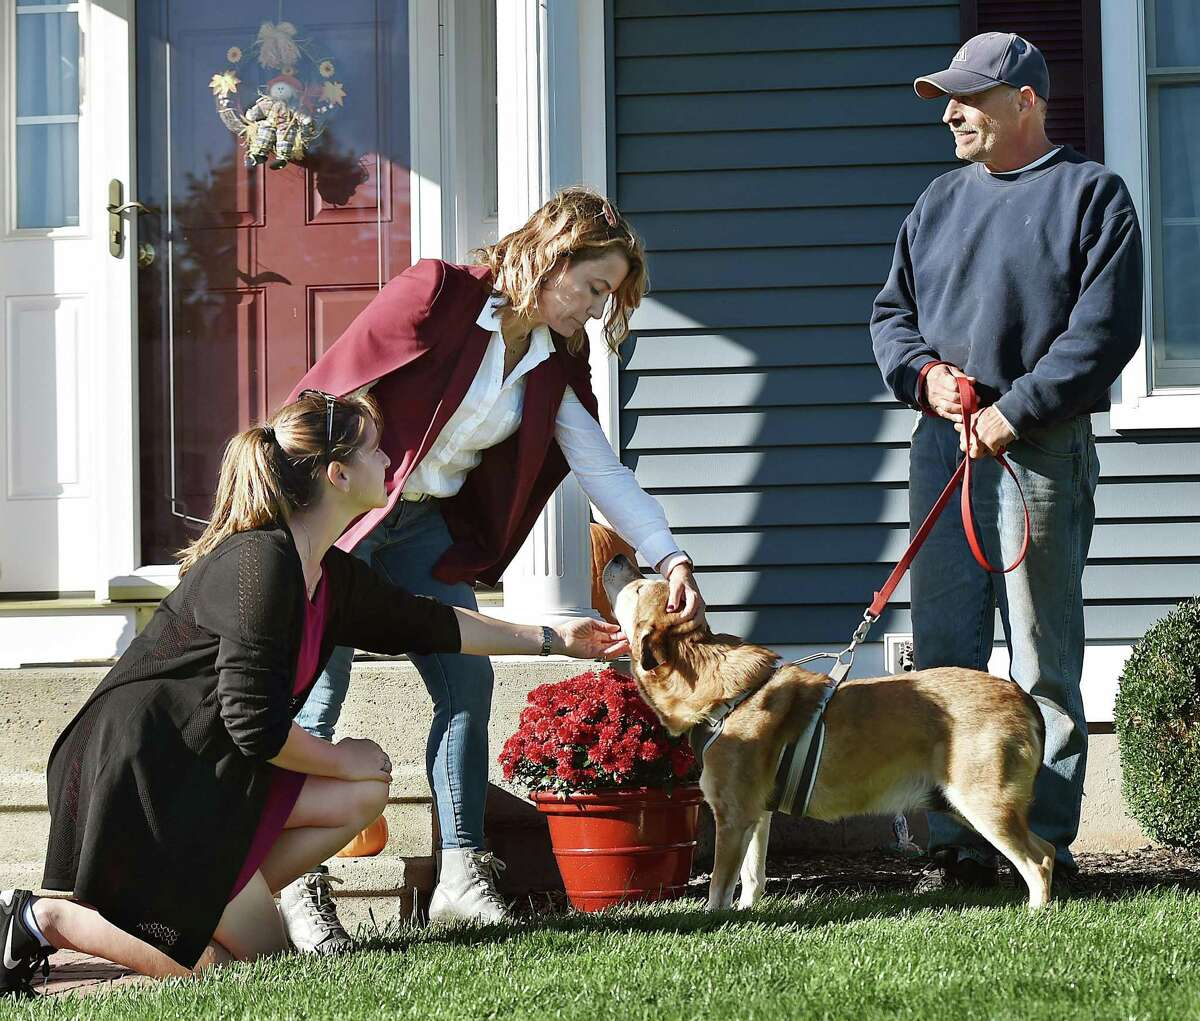 House Minority Leader Themis Klarides, R-Derby joins State Rep. Christie Carpino, R-Cromwell pets Cooper while talking with Tom Grande campaigning door to door Friday, October 12, 2018, in Cromwell.